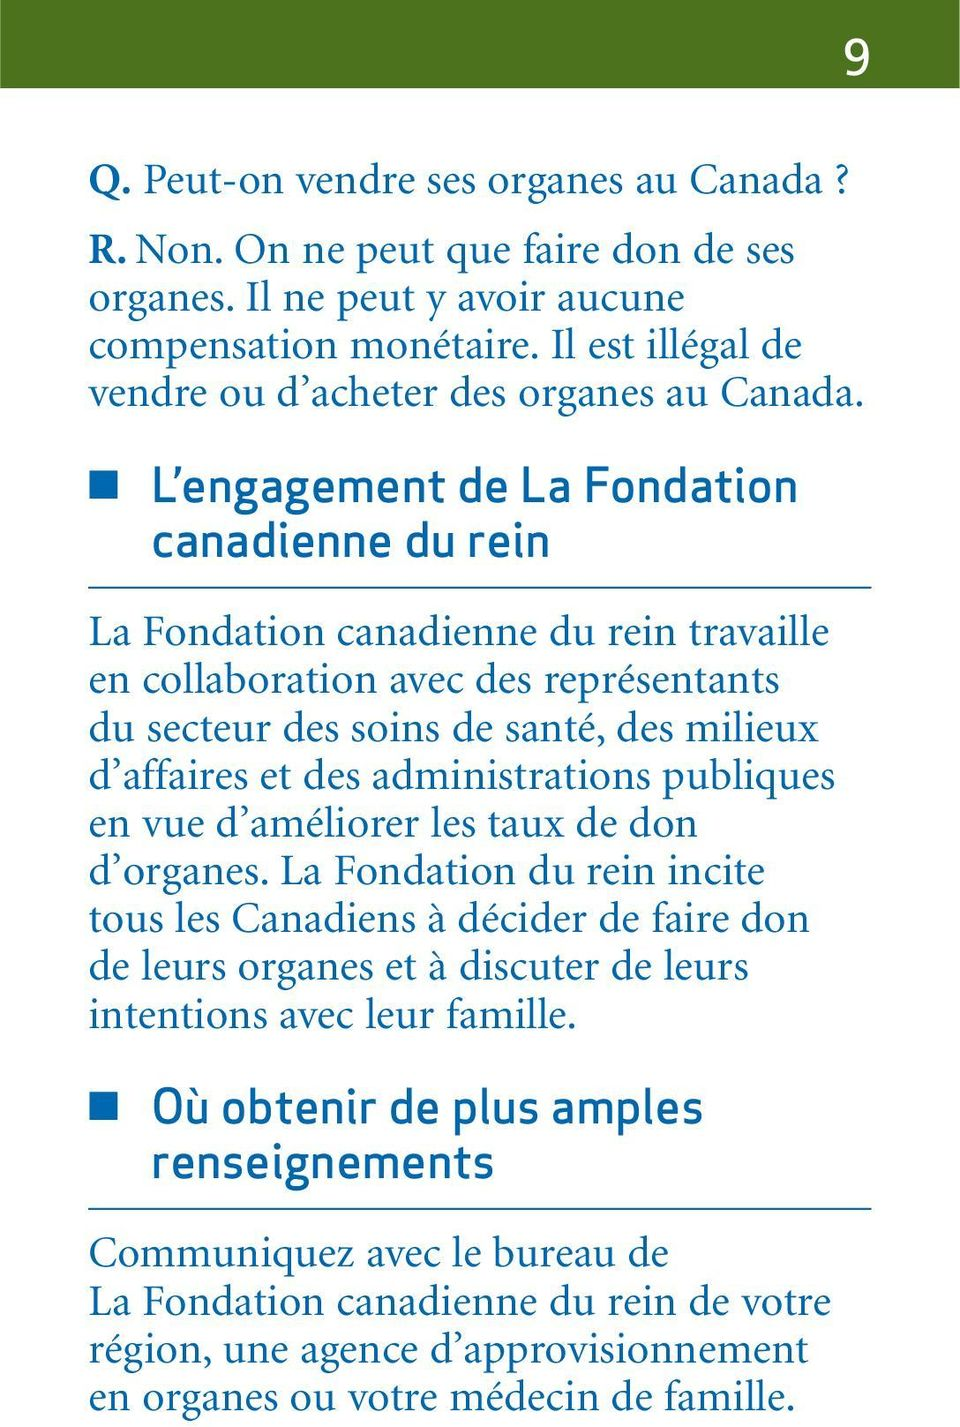 L engagement de La Fondation canadienne du rein La Fondation canadienne du rein travaille en collaboration avec des représentants du secteur des soins de santé, des milieux d affaires et des